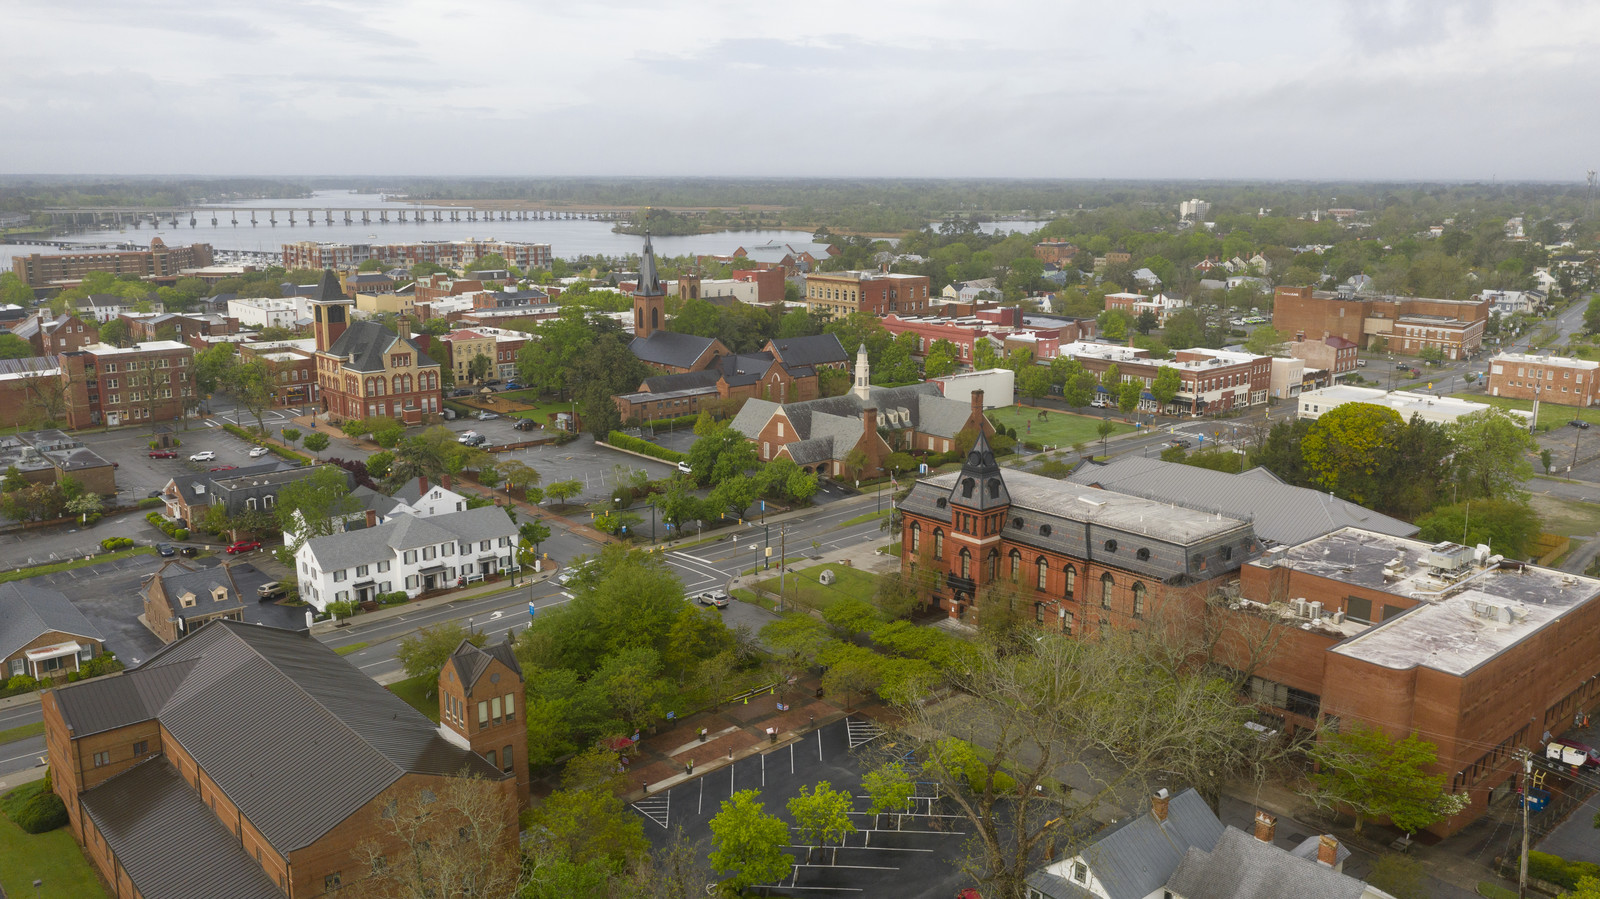 New Bern North Carolina with the Neuse River in the background with fog settling on the town